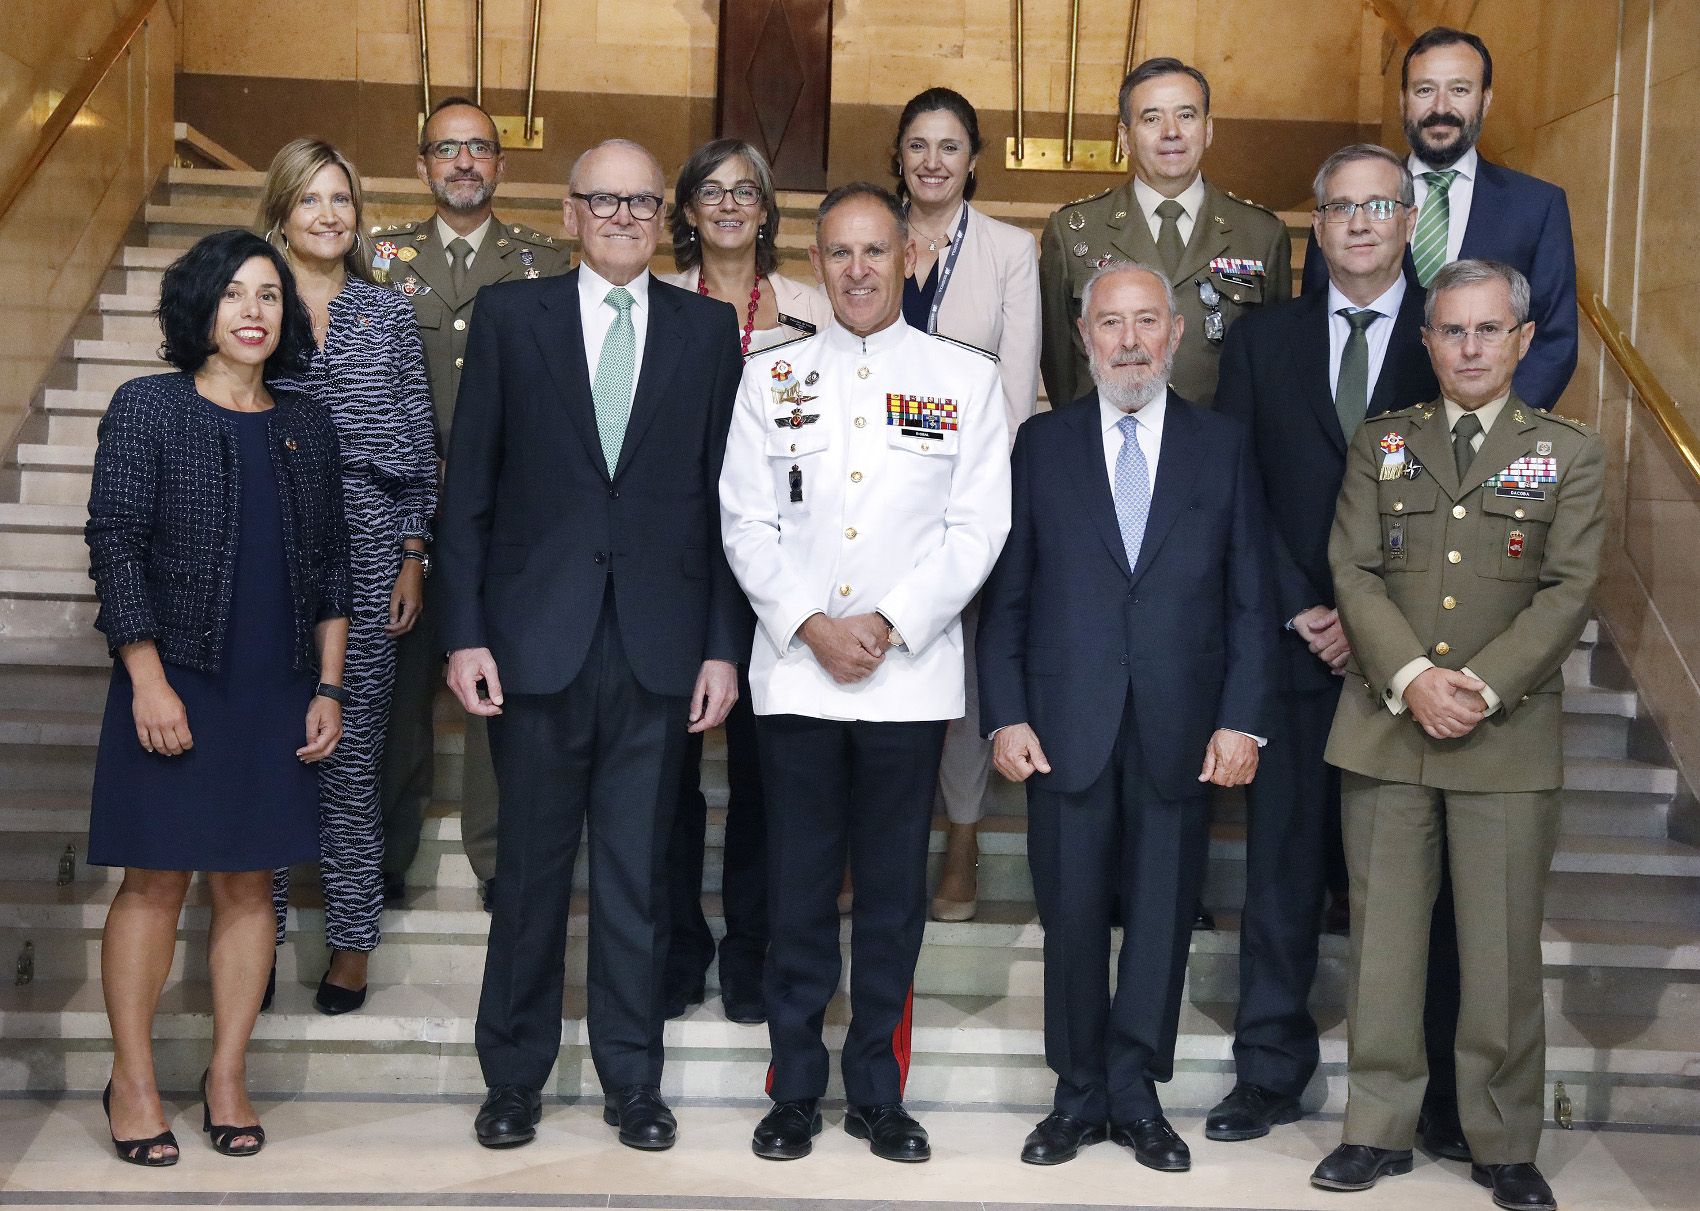 CESEDEN and Iberdrola analyse the role of the Armed Forces and companies in the Sustainable Development Goals